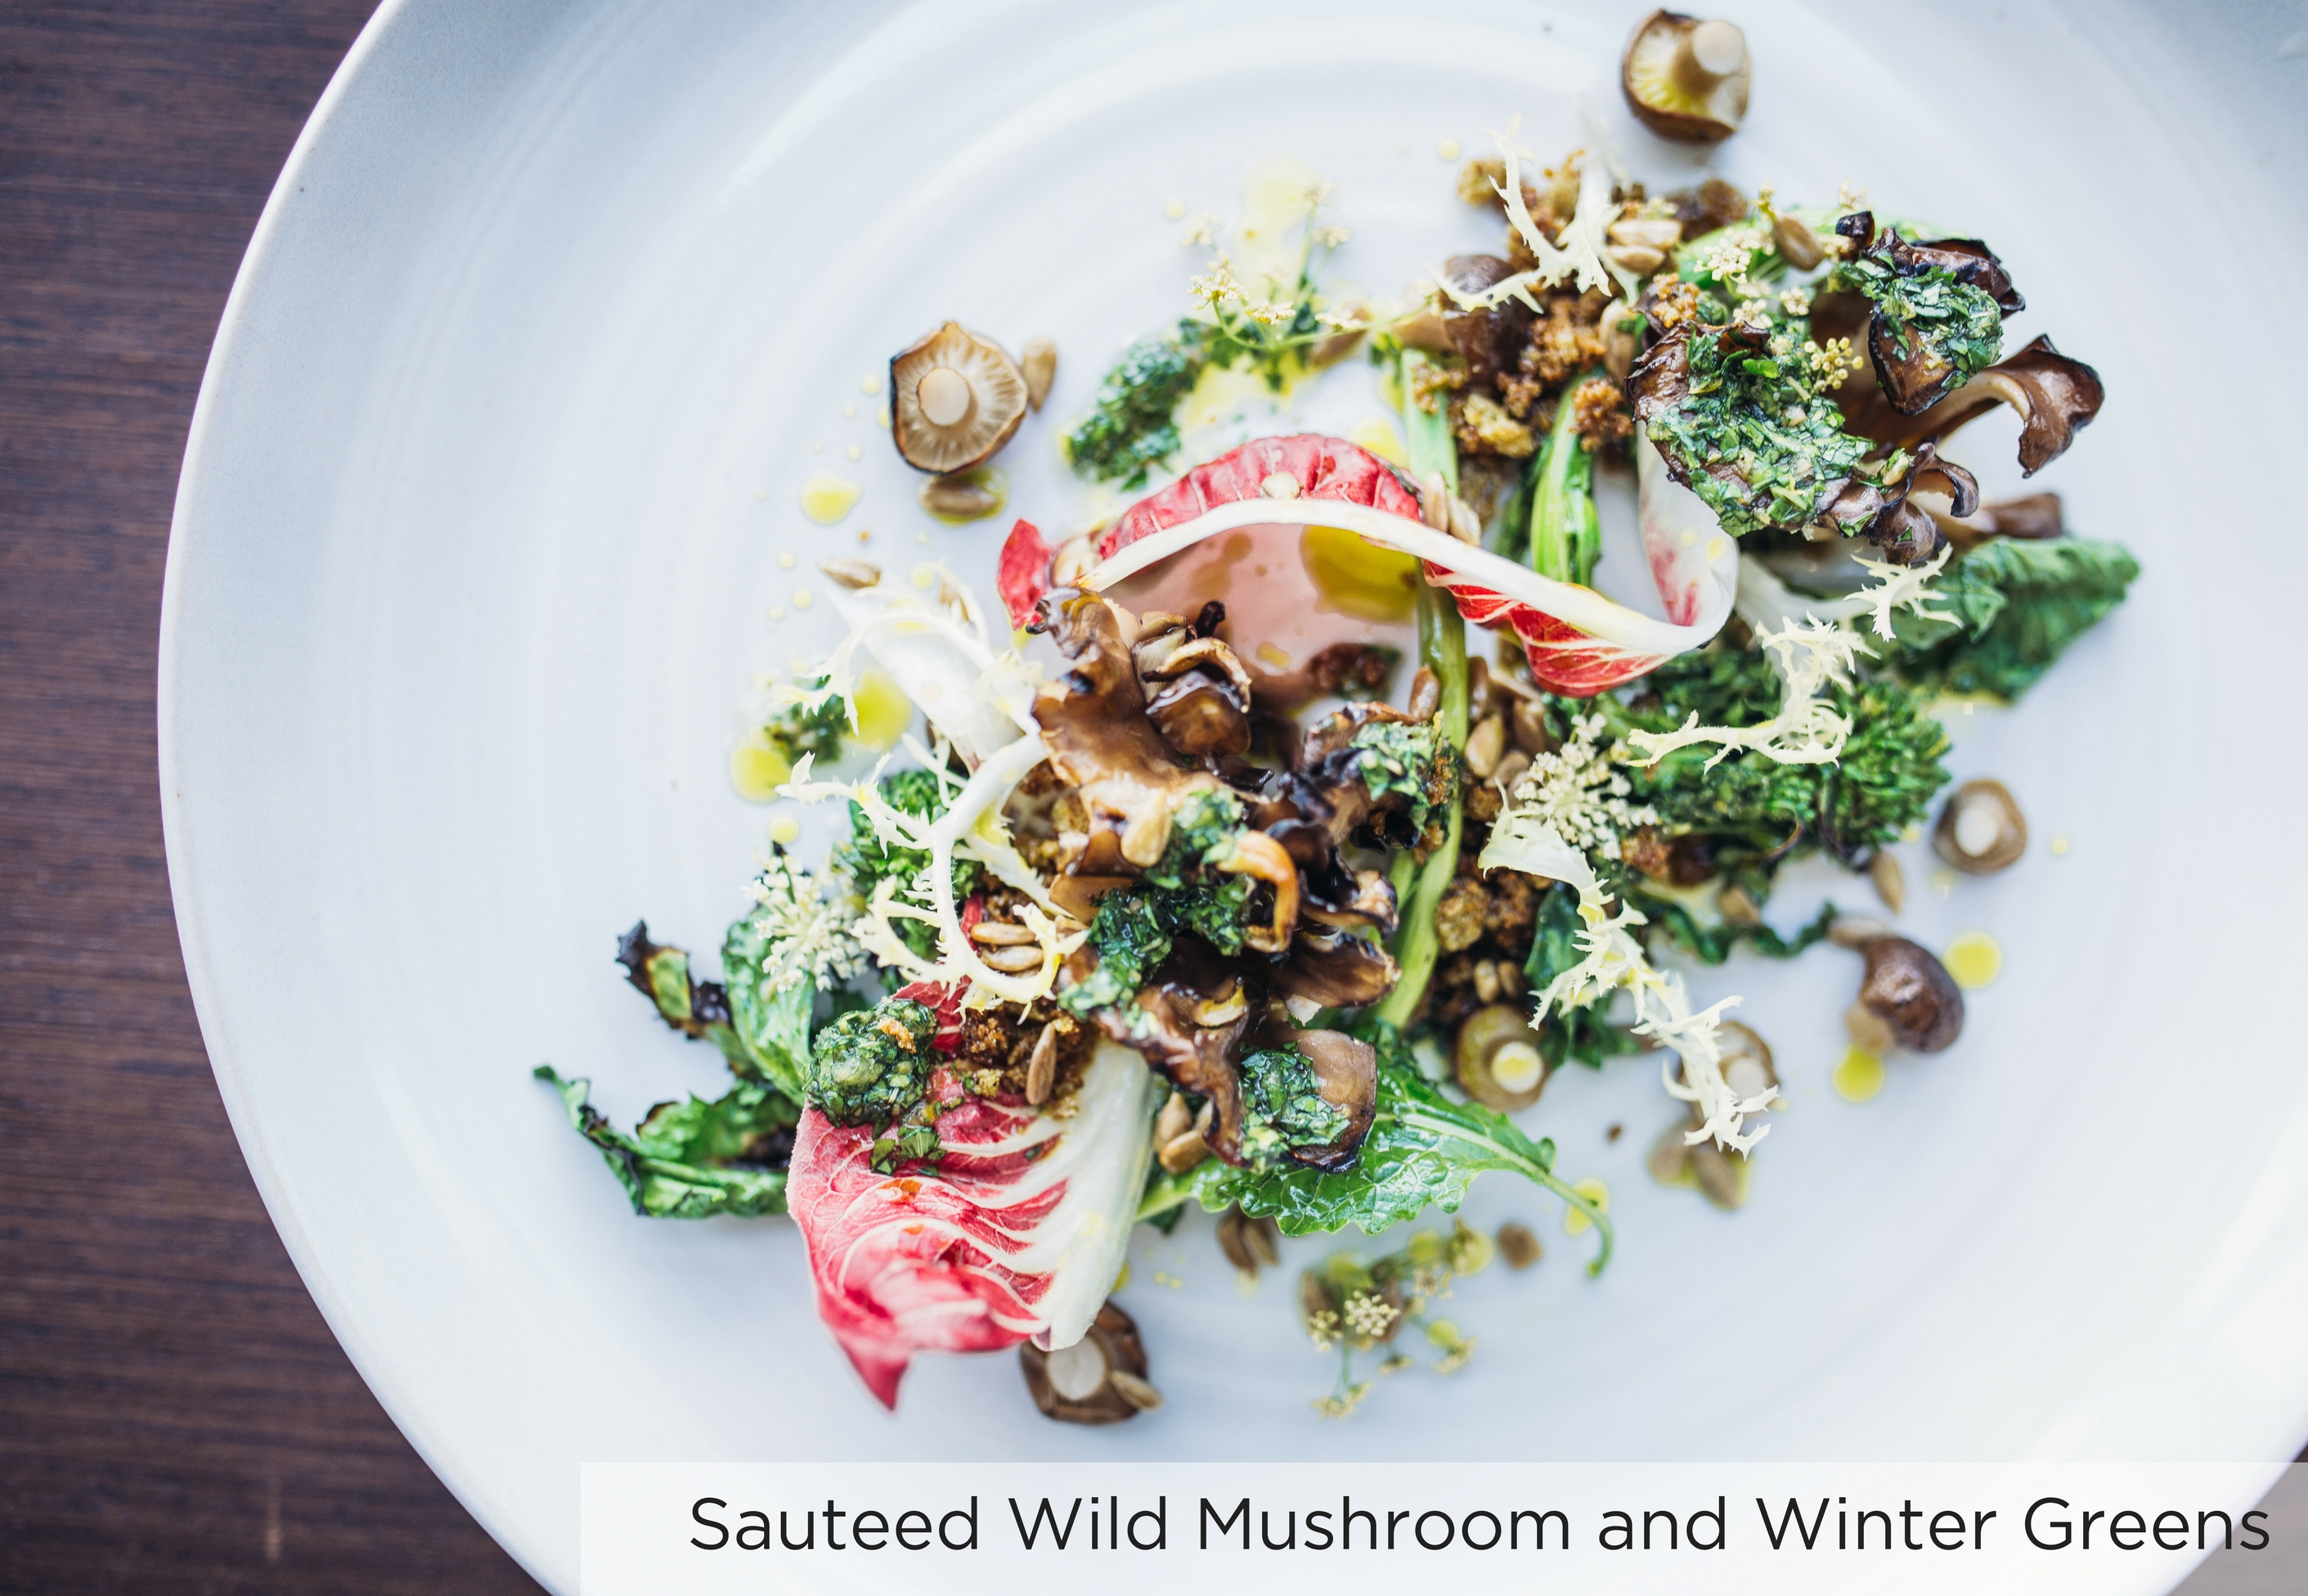 Wolfgang Puck Catering - Sauteed Wild Mushroom and Winter Greens | wolfgangpuck.com/catering